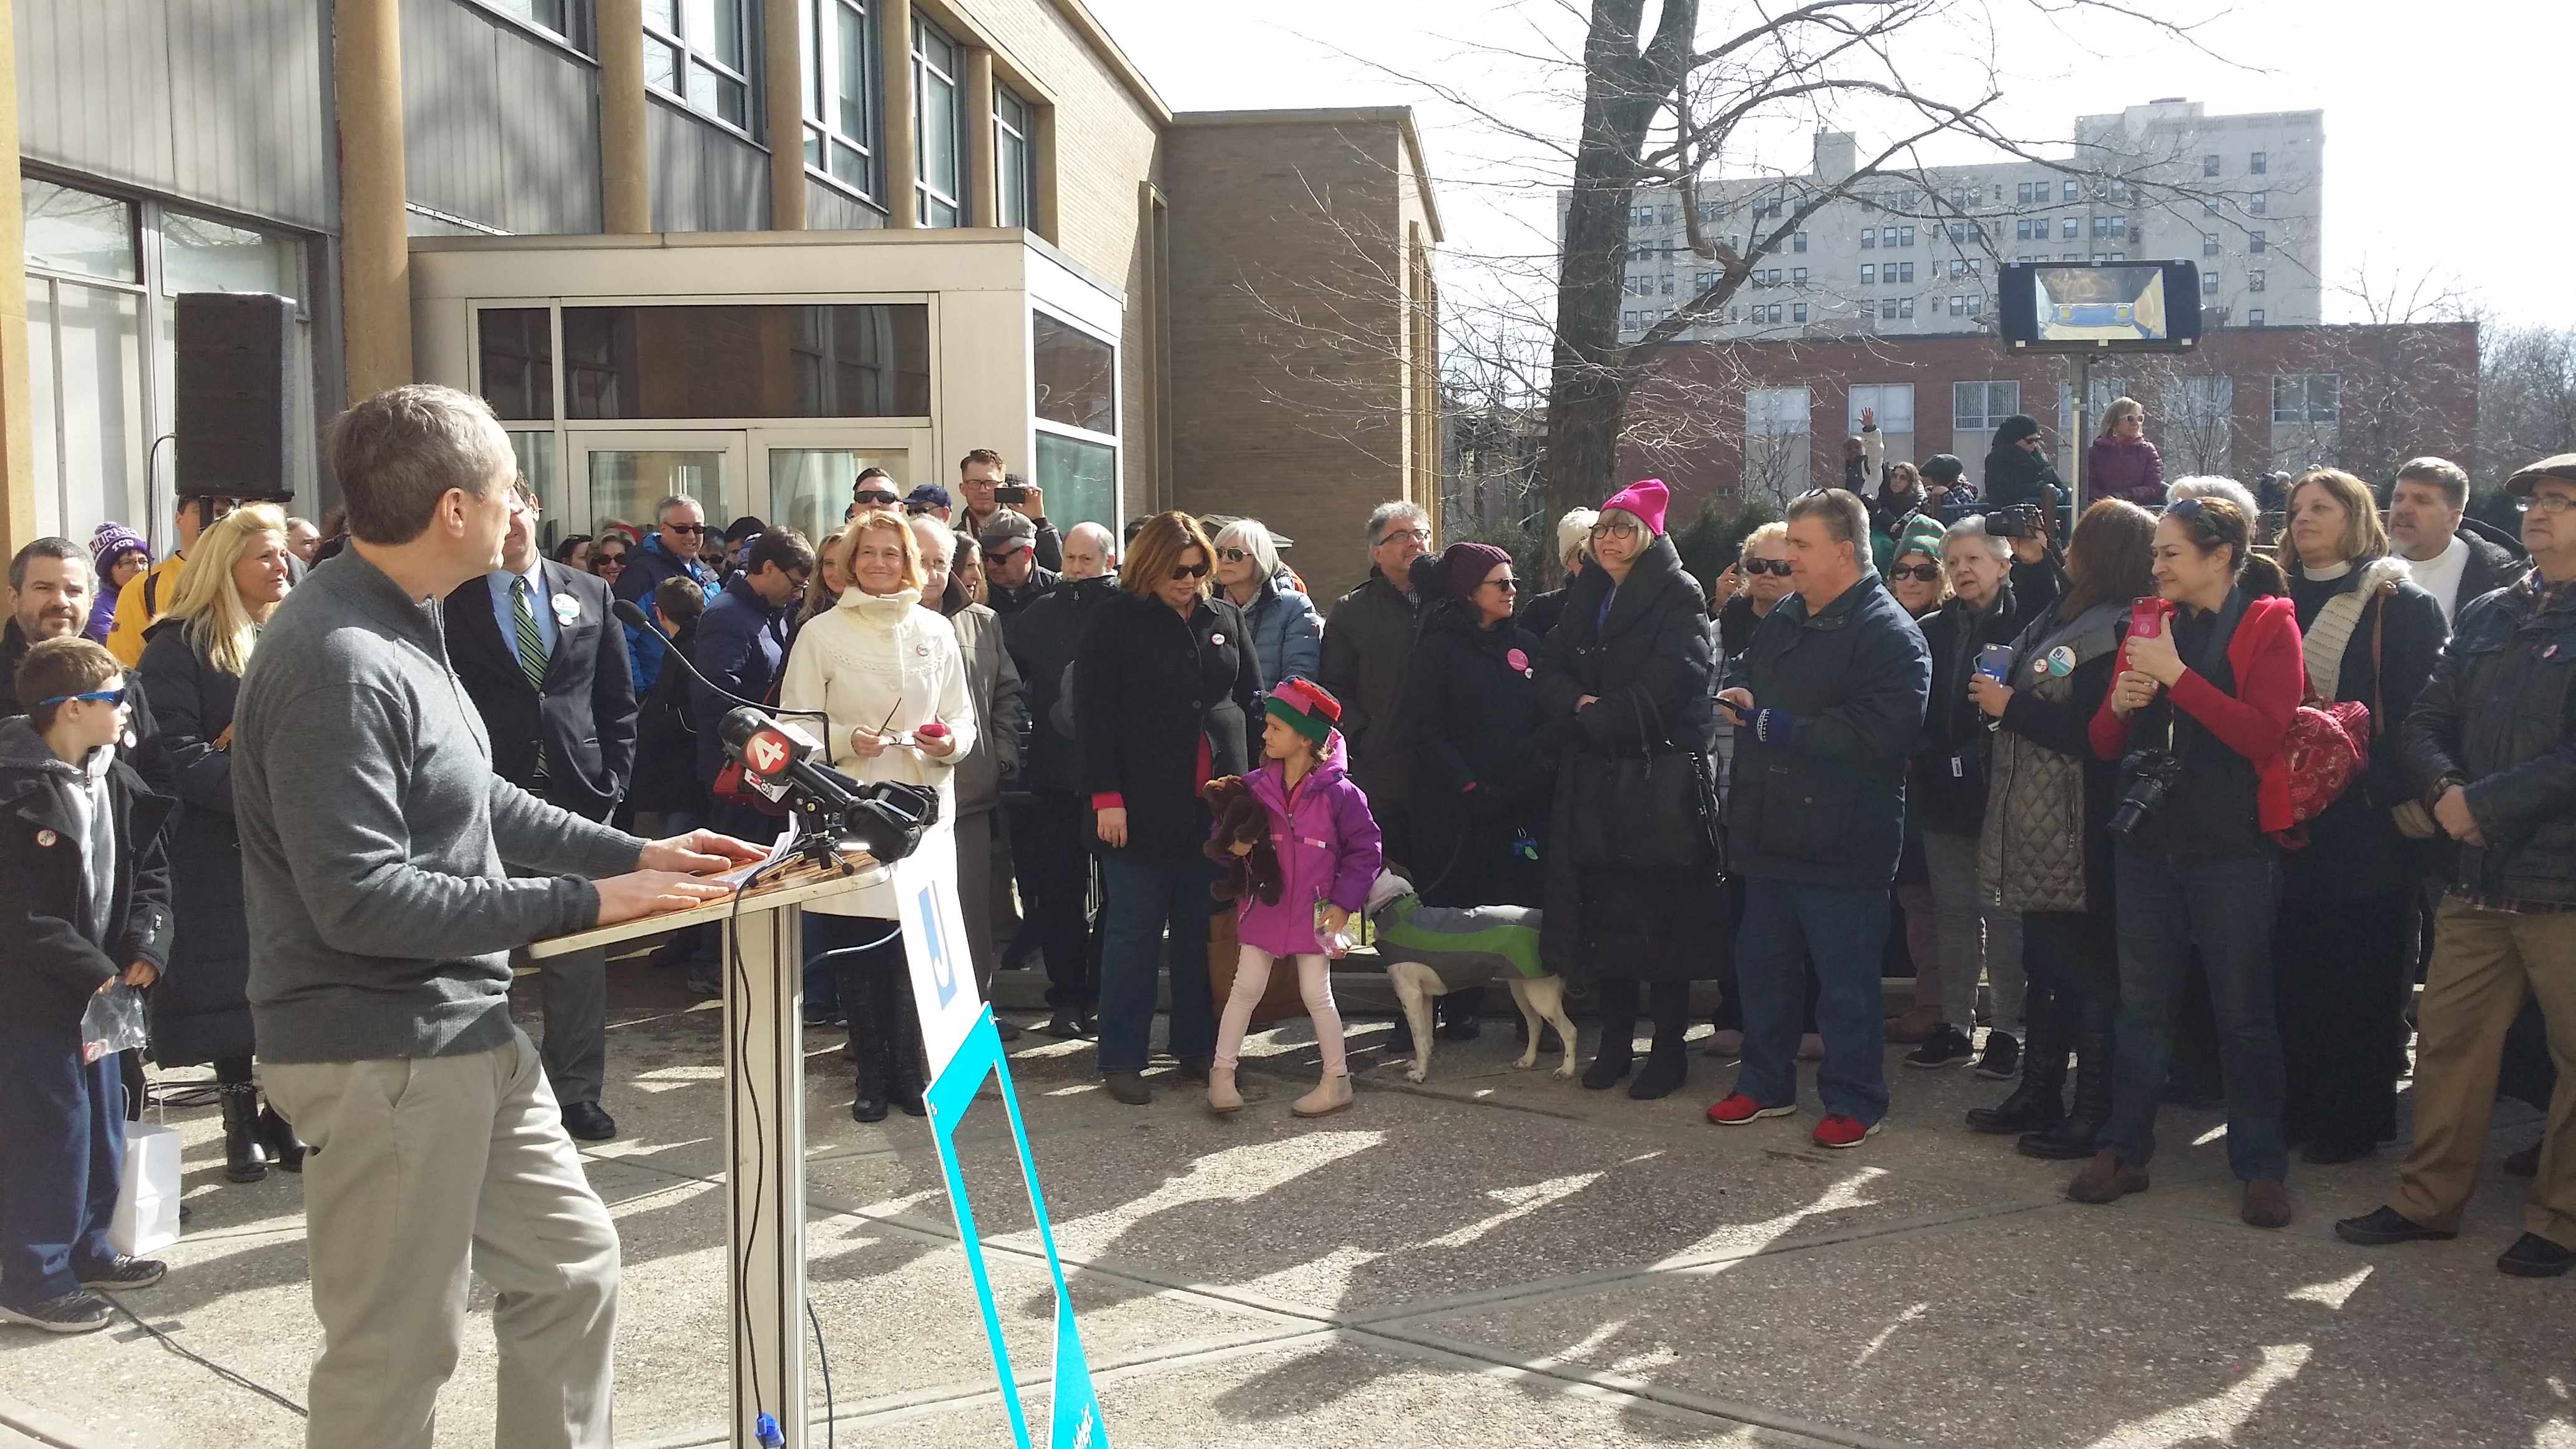 Assemblyman Sean Ryan welcomes the crowd outside the Jewish Community Center.